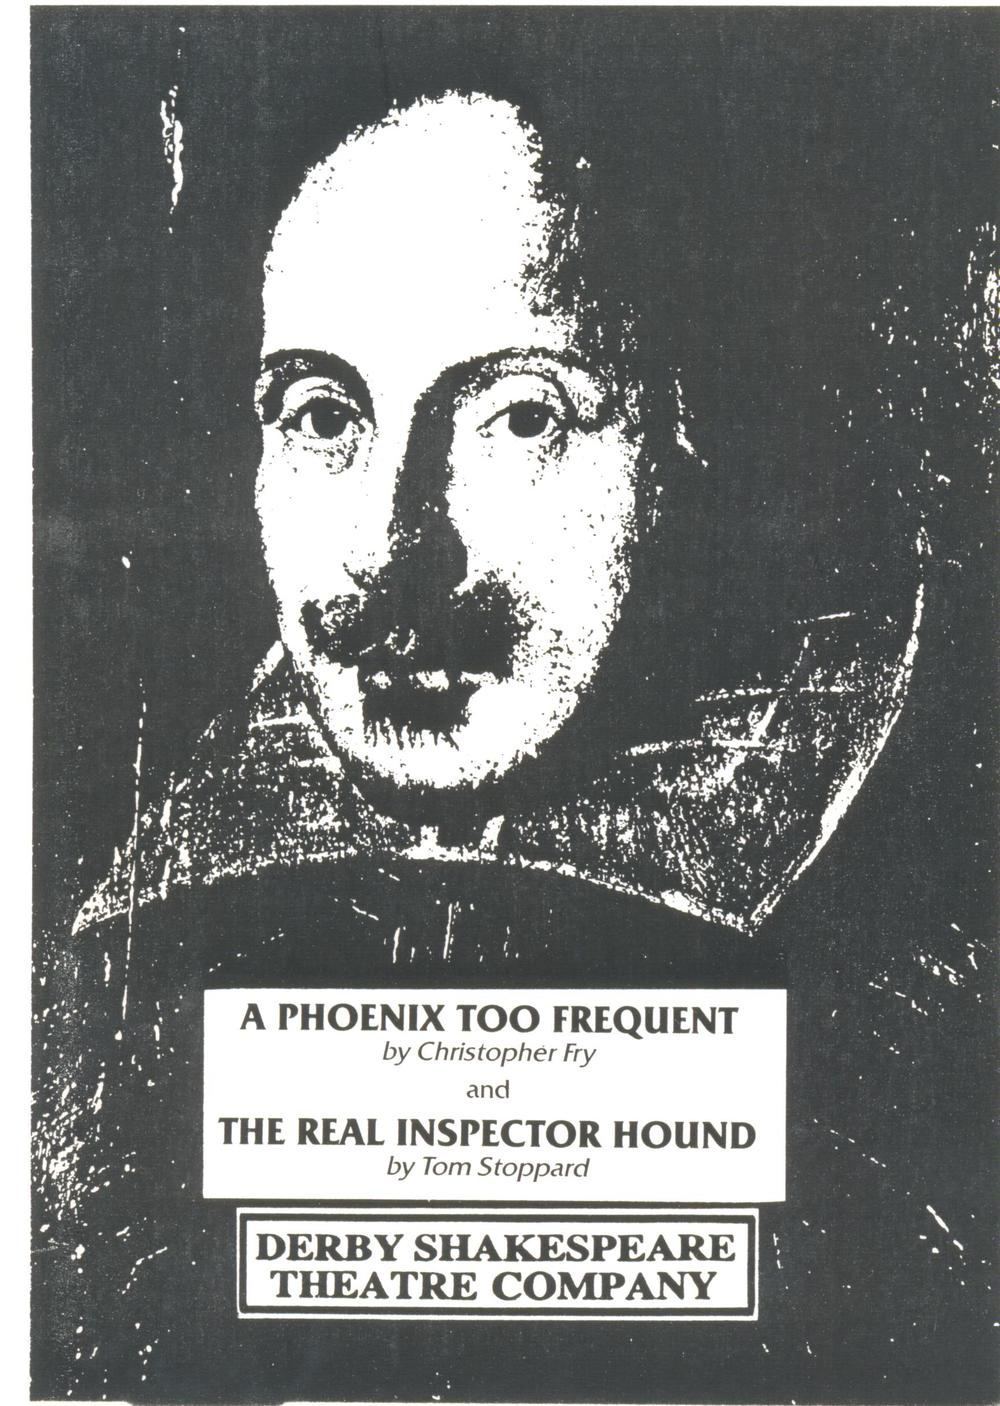 'A Phoenix Too Frequent' & 'The Real Inspector Hound' 1987